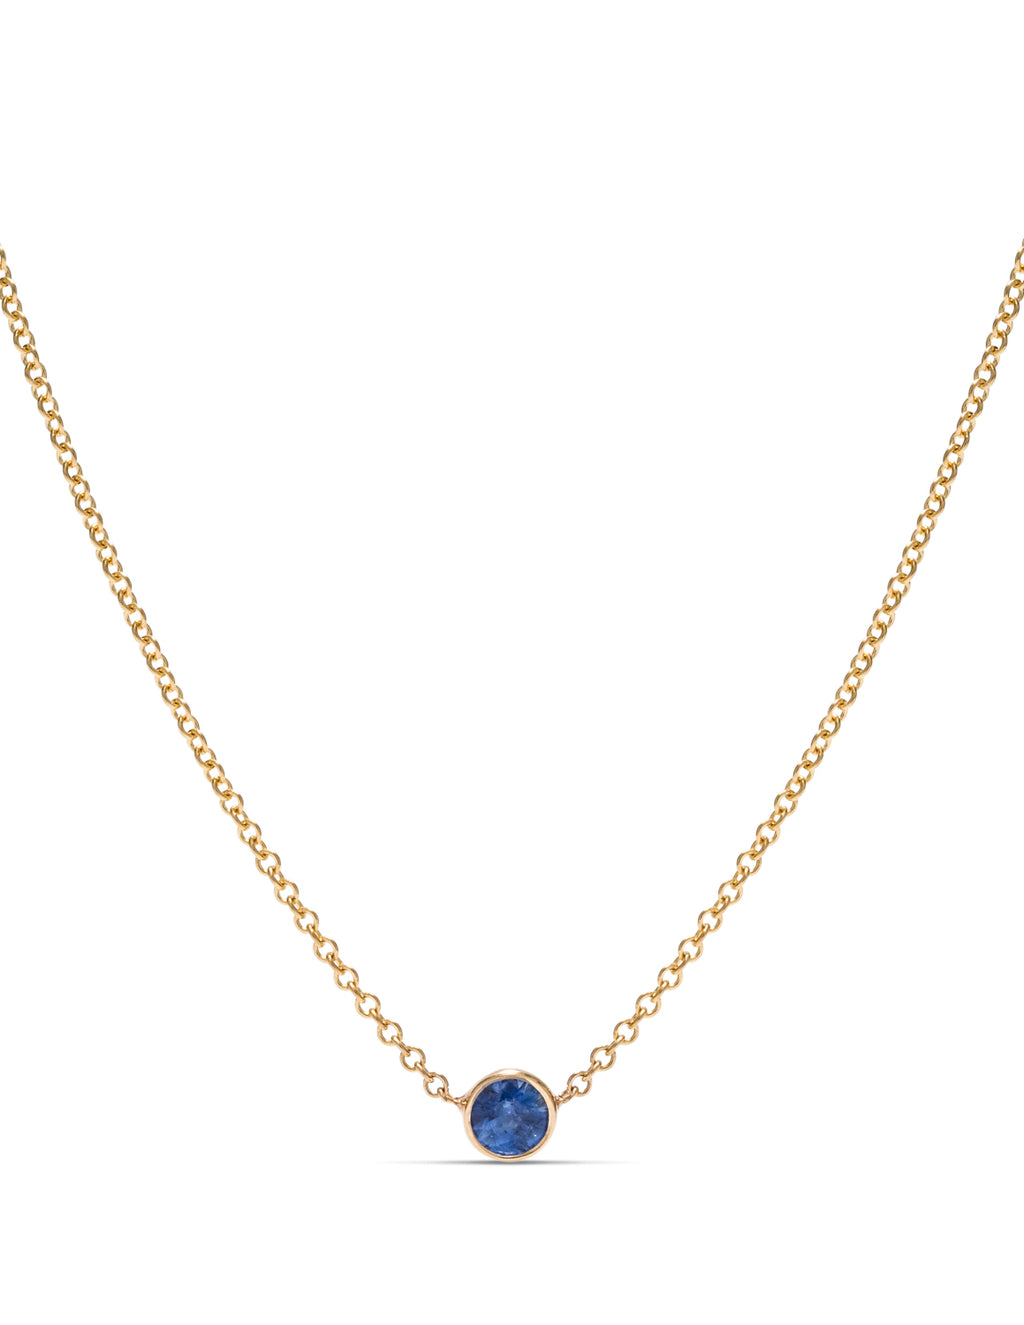 Delicate Bezel Sapphire Necklace - Charles Koll Jewellers